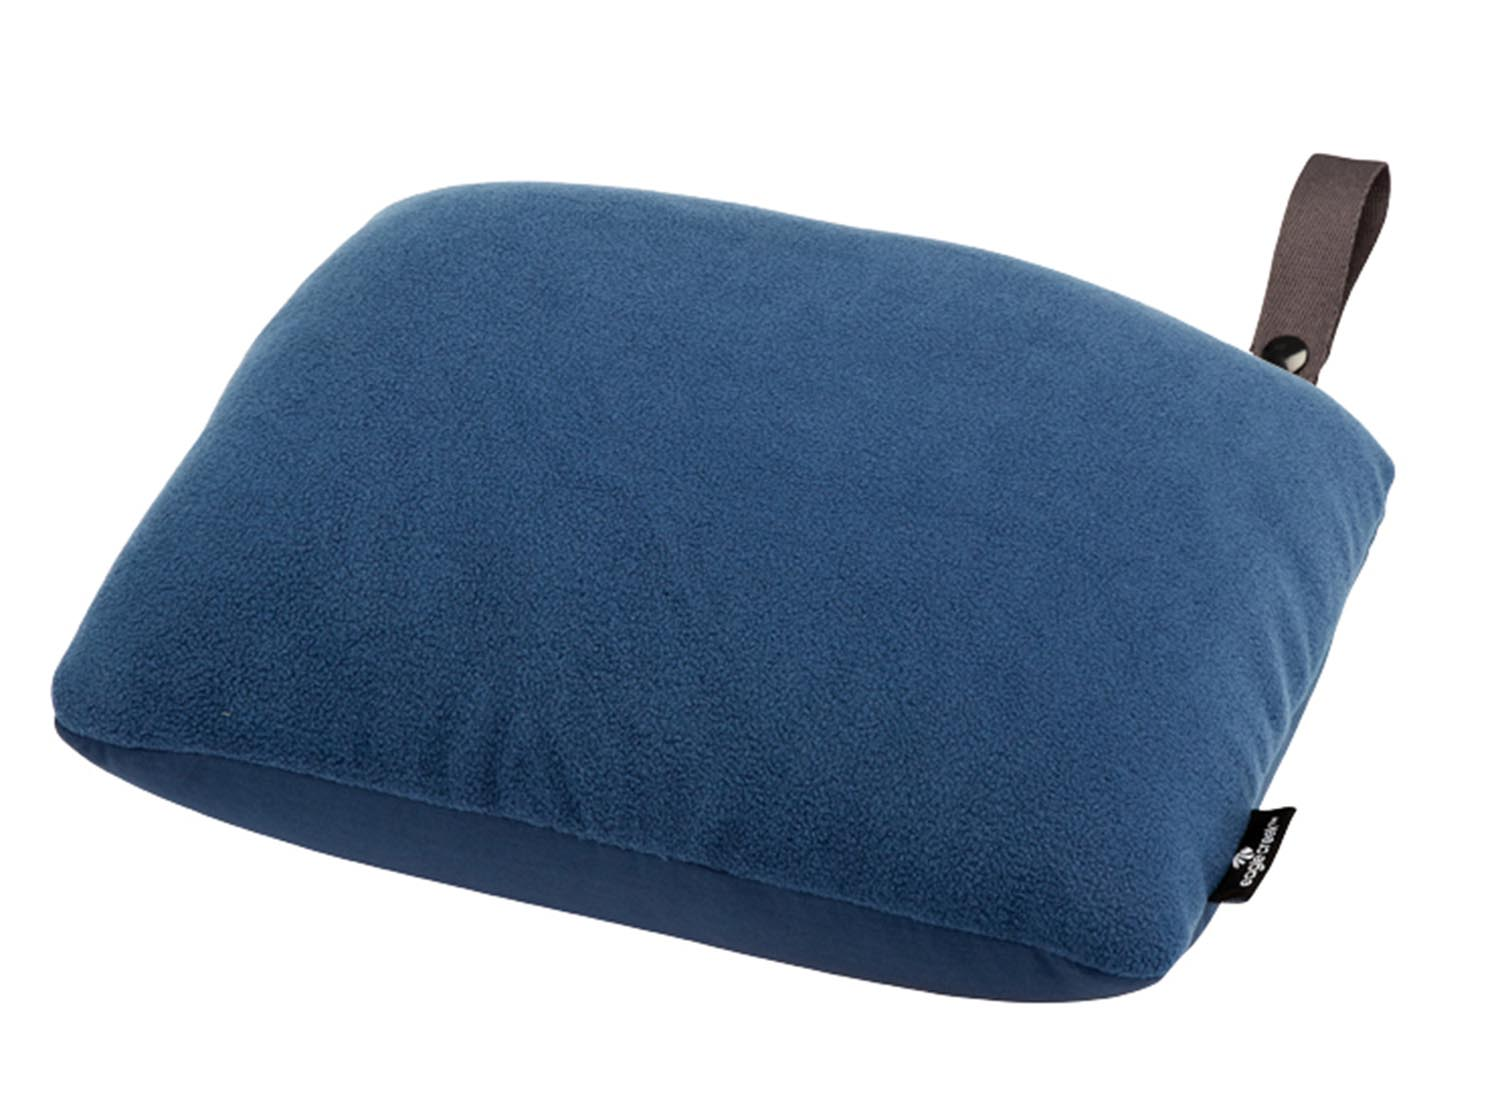 Eagle Creek 2-in-1 Travel Pillow Slate Blue-30